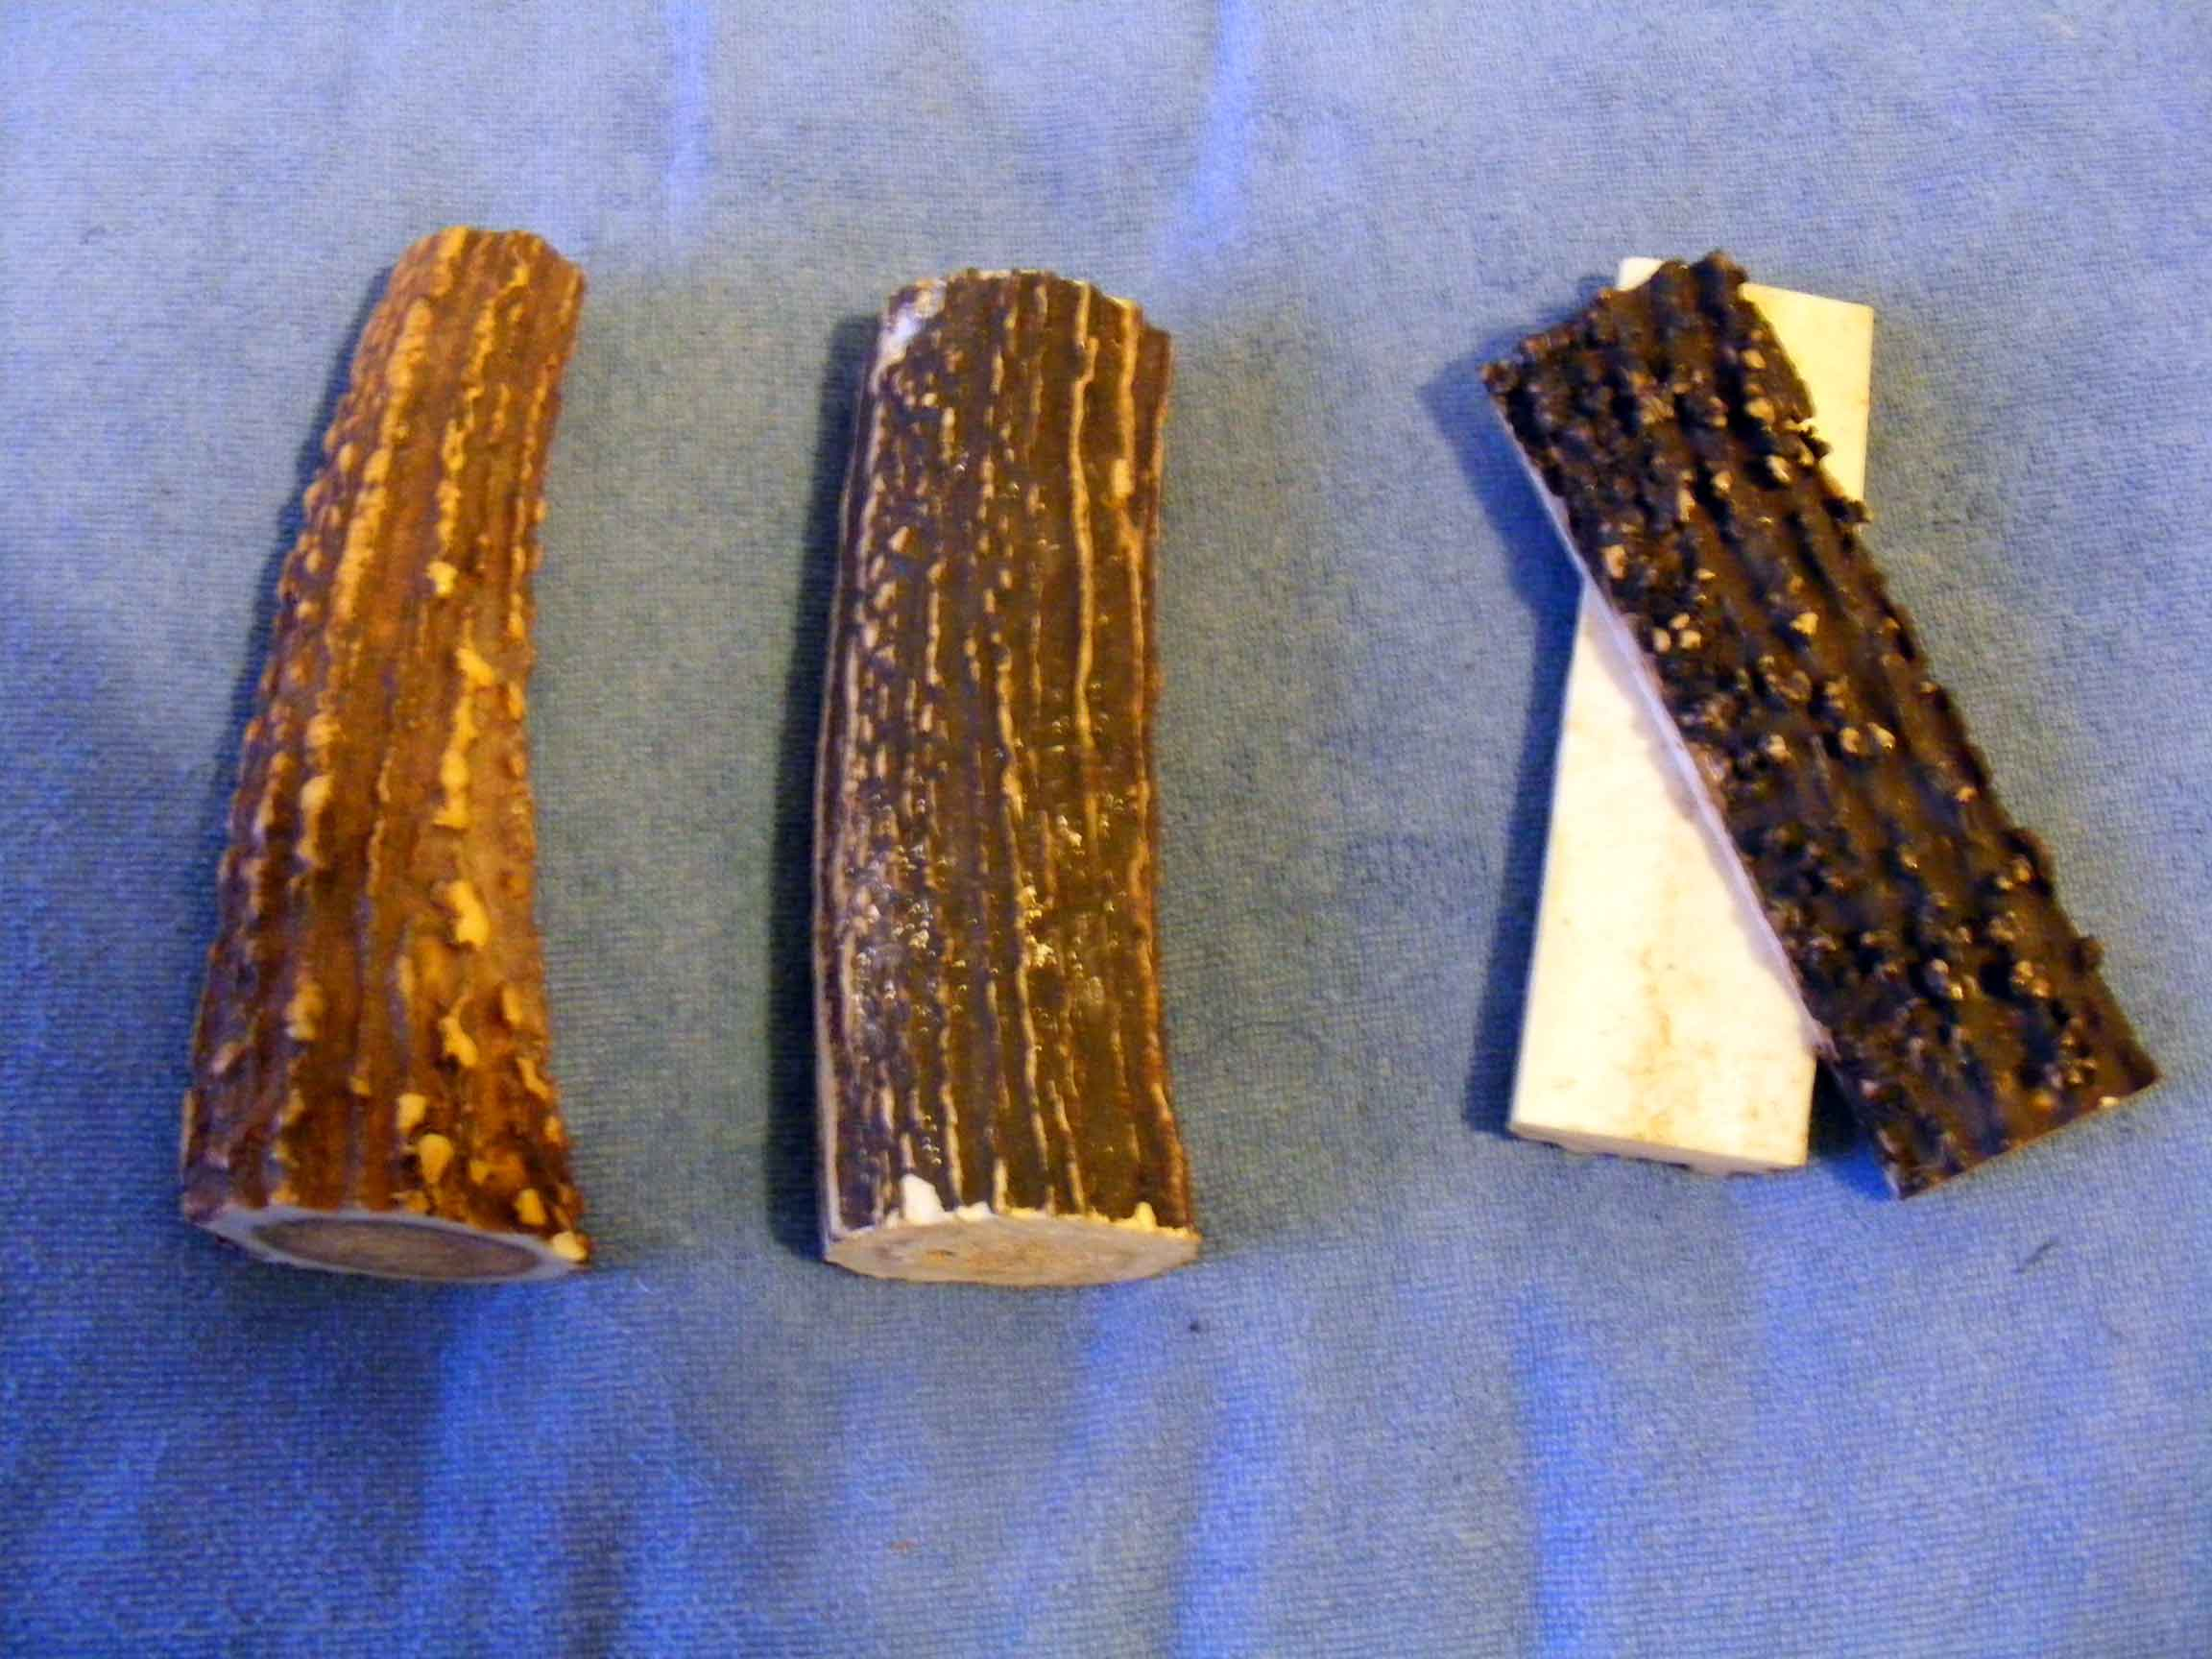 Frenchy S Custom Knives And Sticks For A Fine Selection Of